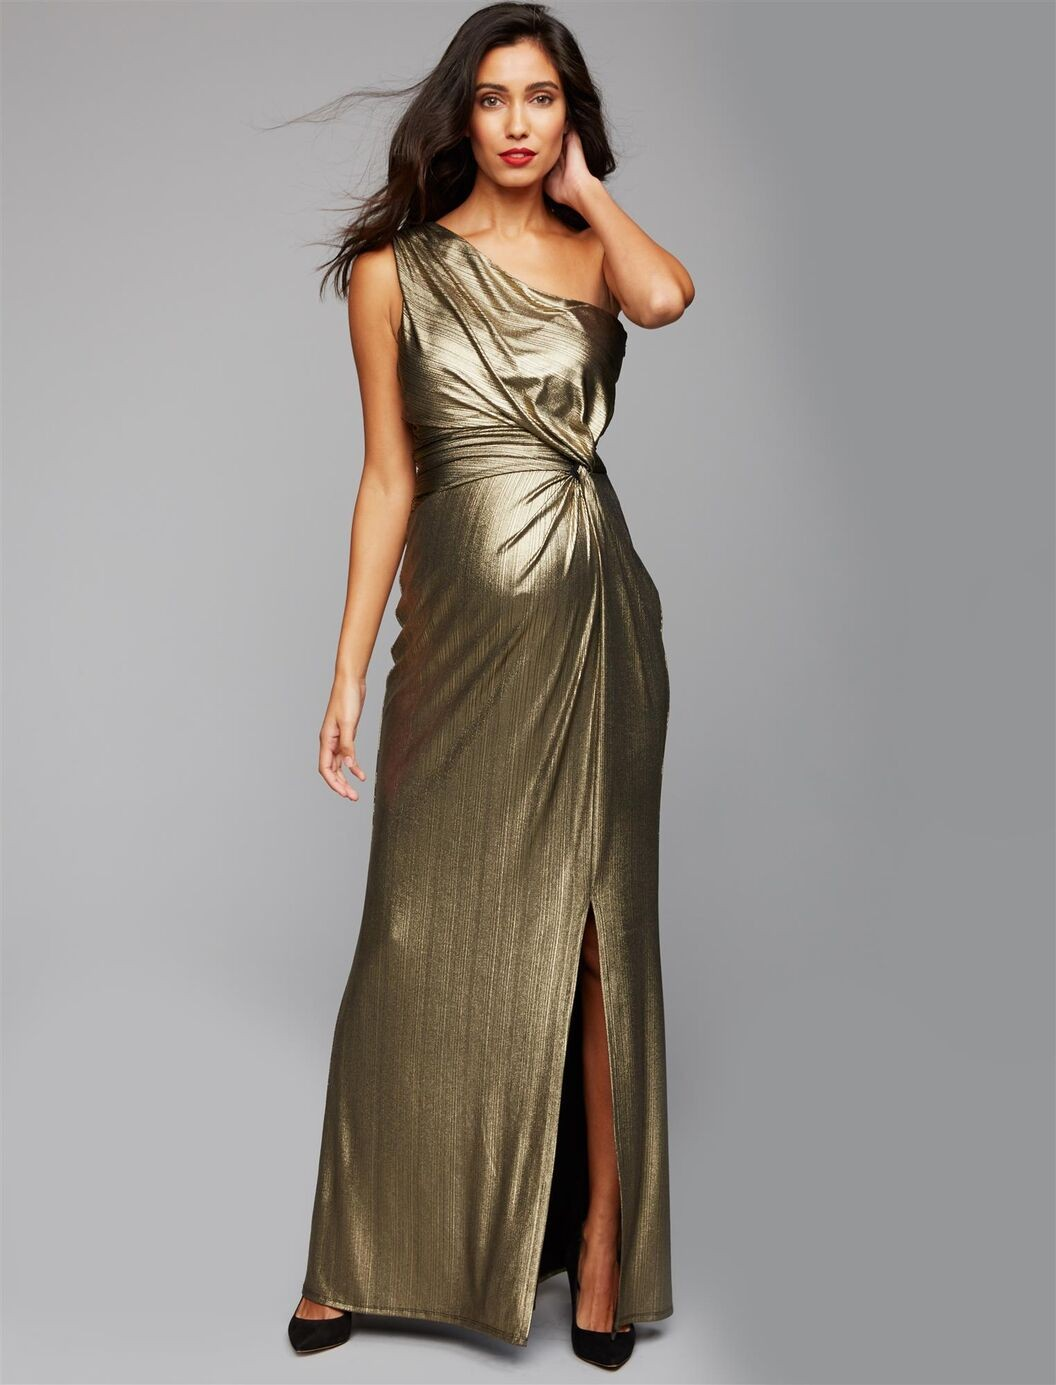 Maternity dress for a wedding guest fashionable maternity dress for a wedding ombrellifo Images